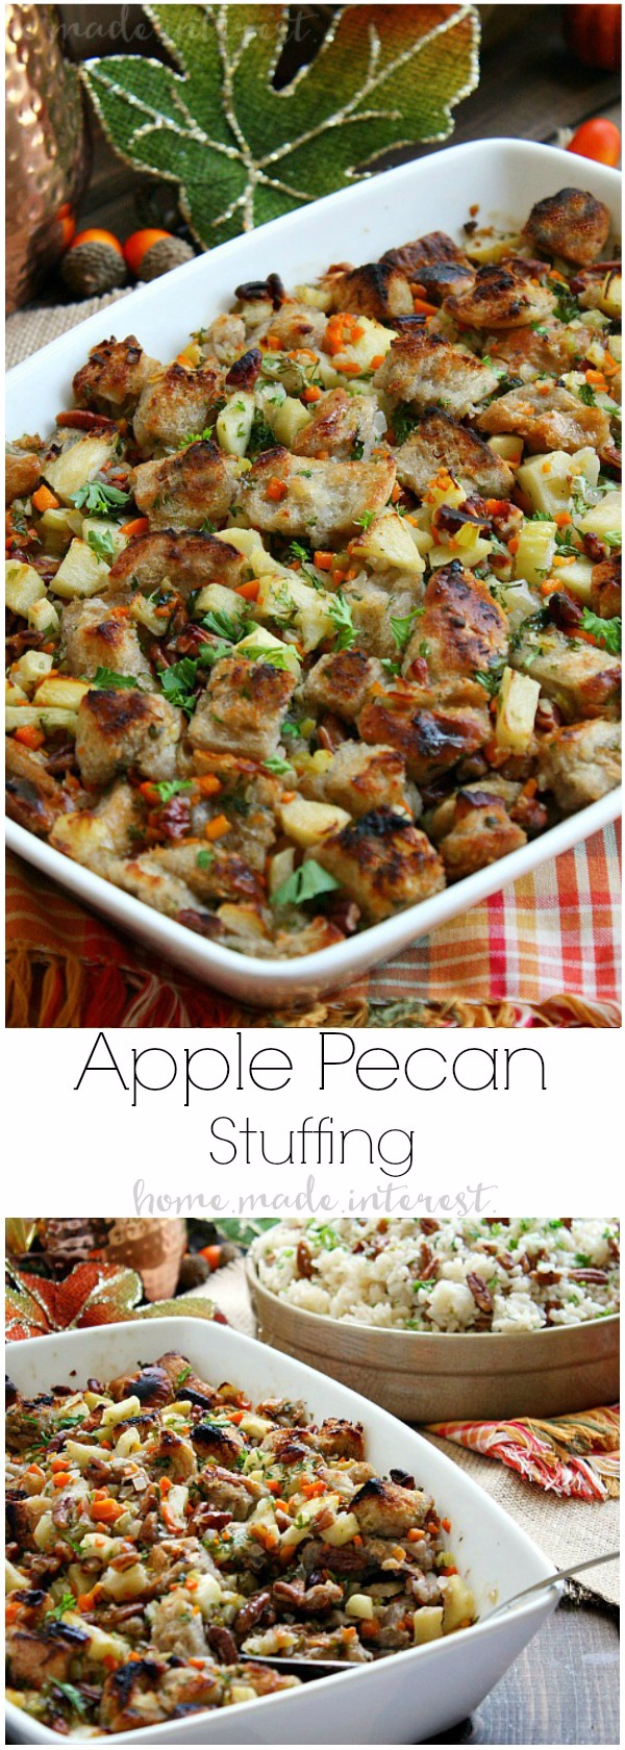 Best Thanksgiving Dinner Recipes - Apple Pecan Stuffing - Easy DIY Desserts, Sides, Sauces, Main Courses, Vegetables, Pie and Side Dishes. Simple Gravy, Cranberries, Turkey and Pies With Step by Step Tutorials